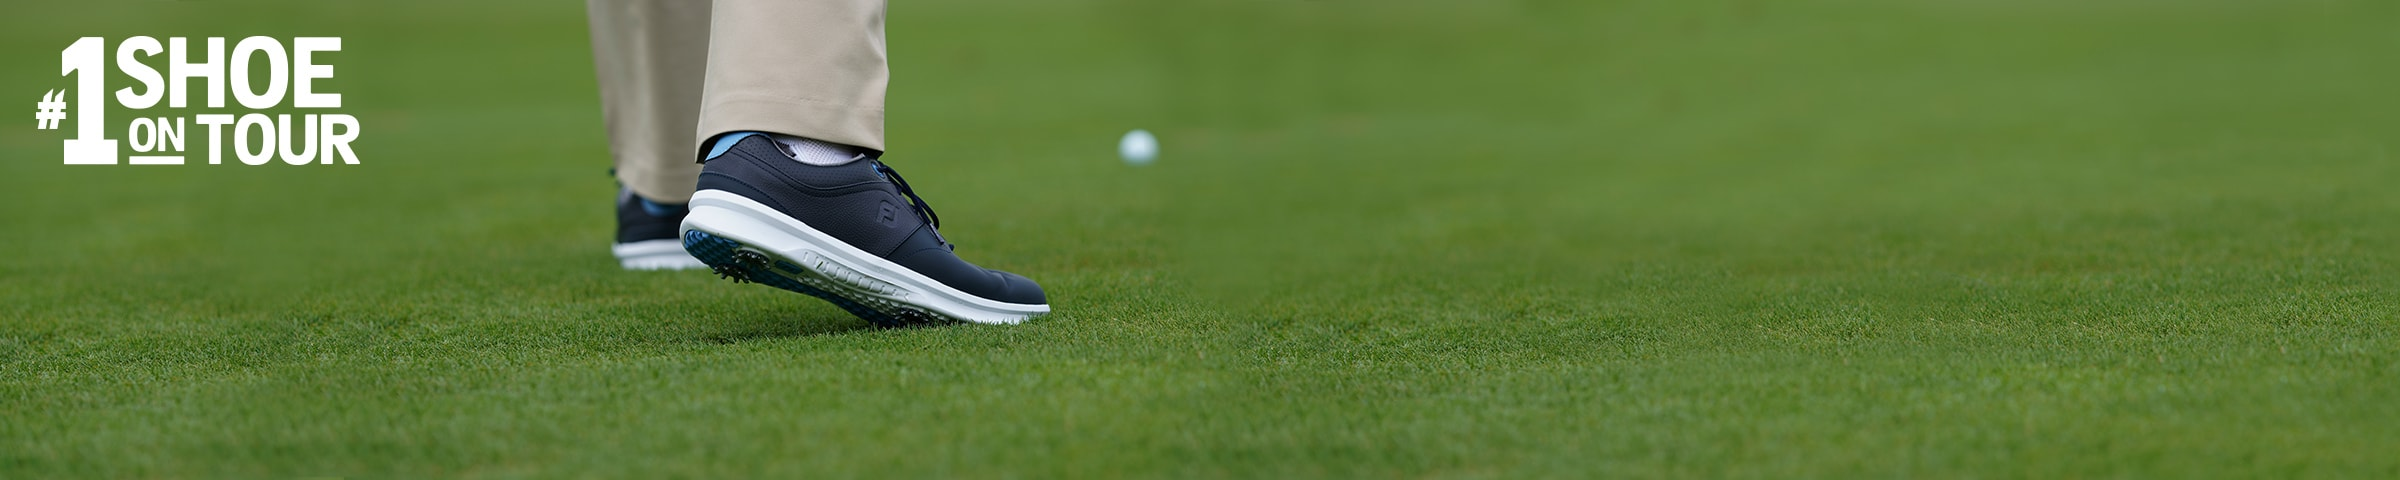 FootJoy Men's Spiked Golf Shoes